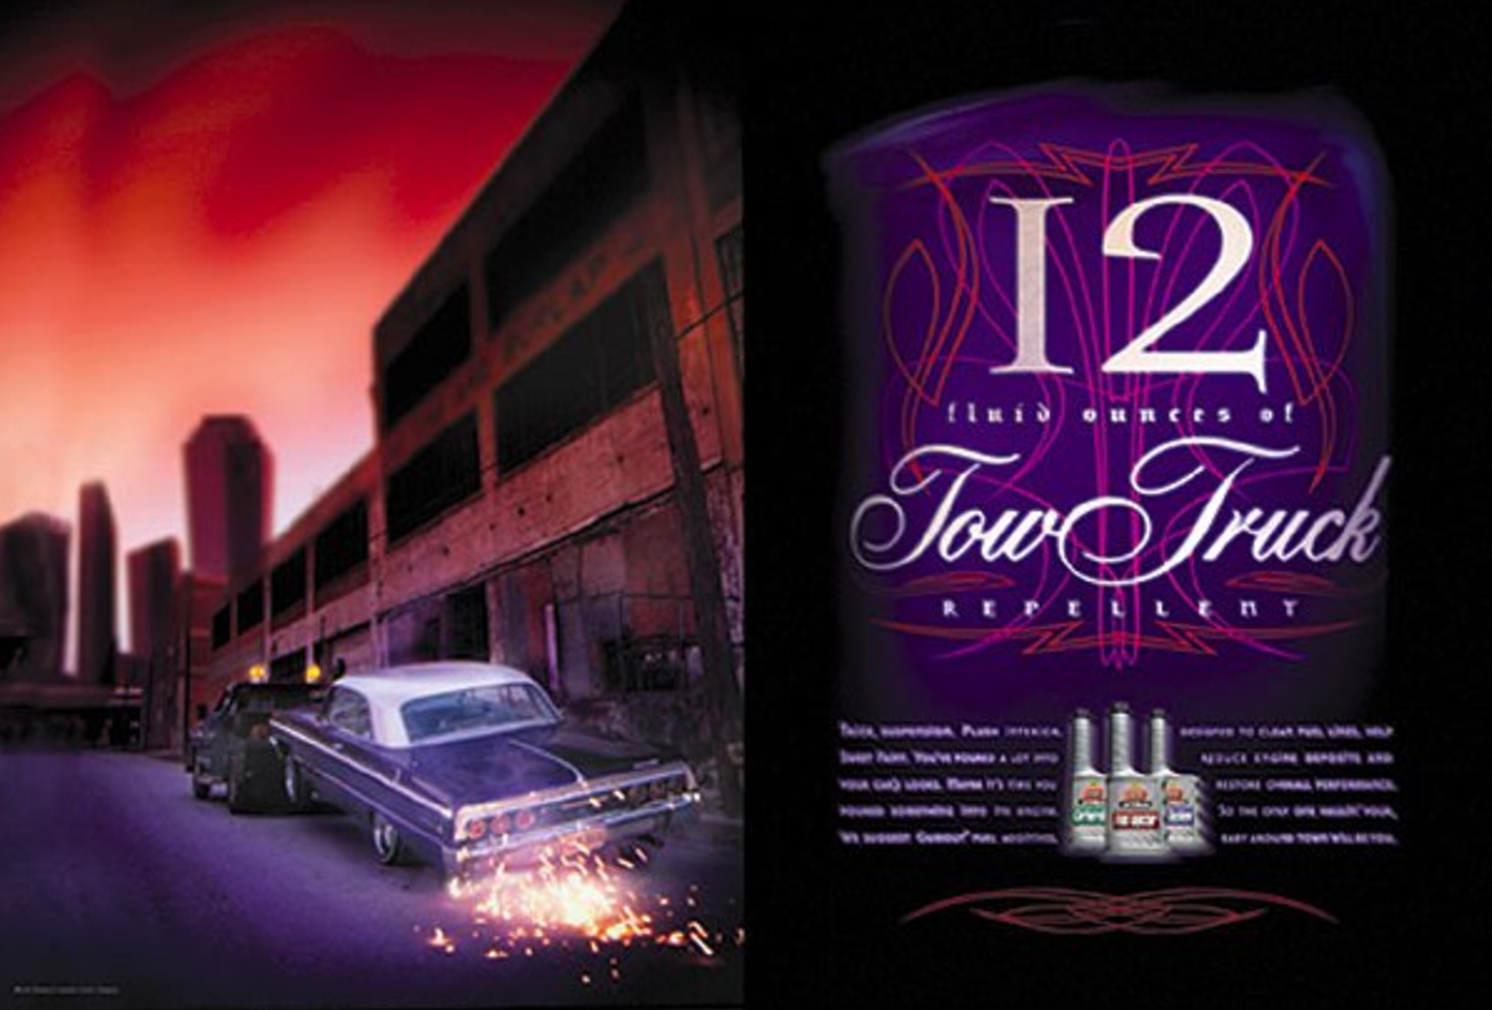 HEADLINE: TWELVE FLUID OUNCES OF TOW TRUCK REPELLENT.  Gumout is the perfect product for extending the life of a tired engine, leaving car lovers more money for fancy paint jobs and lowered suspensions. This ad appeared in Lowrider magazine, hence the use of a customized Impala. I wrote the headline and David Crawford provided the art direction.